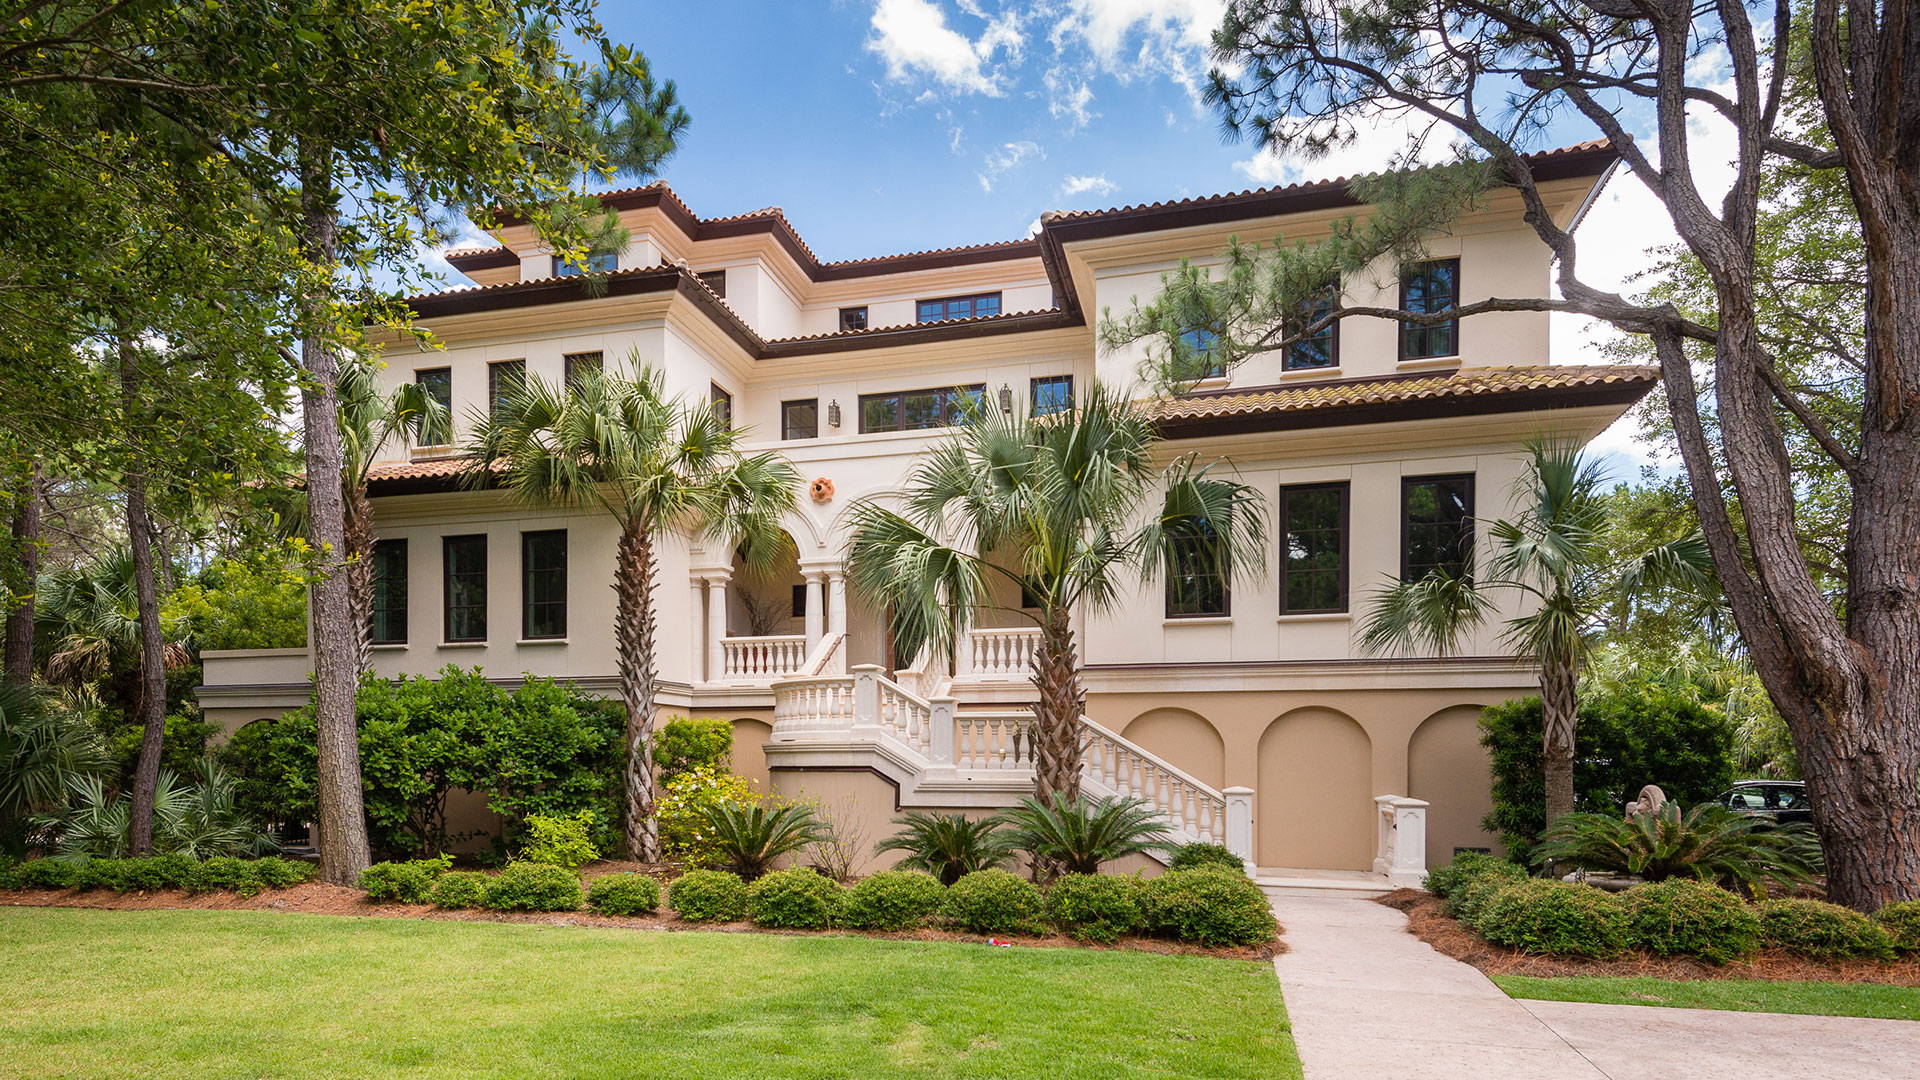 130 Ocean Palms Court, Kiawah Island, South Carolina